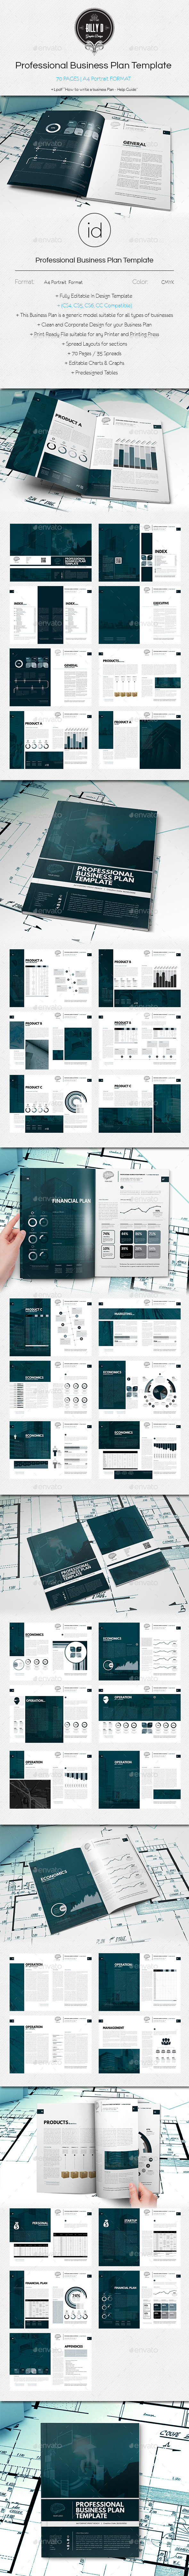 GraphicRiver Professional Business Plan Template 10231493